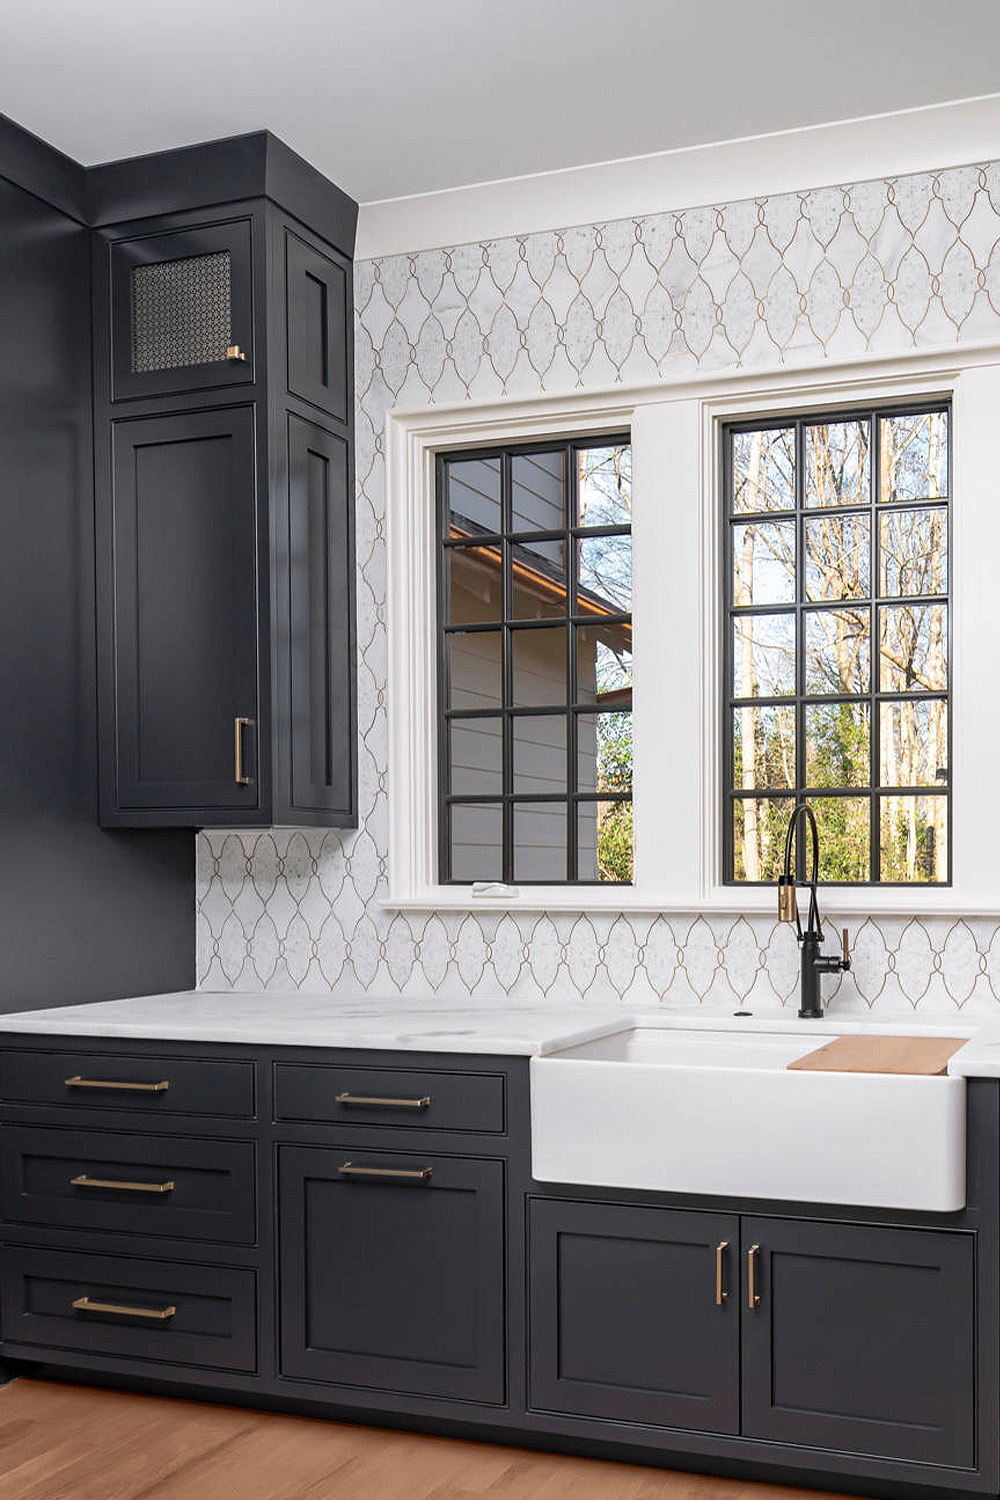 91403 Black Kitchen Cabinets Gold Knobs Traditonal Farm Sink Backsplash Com